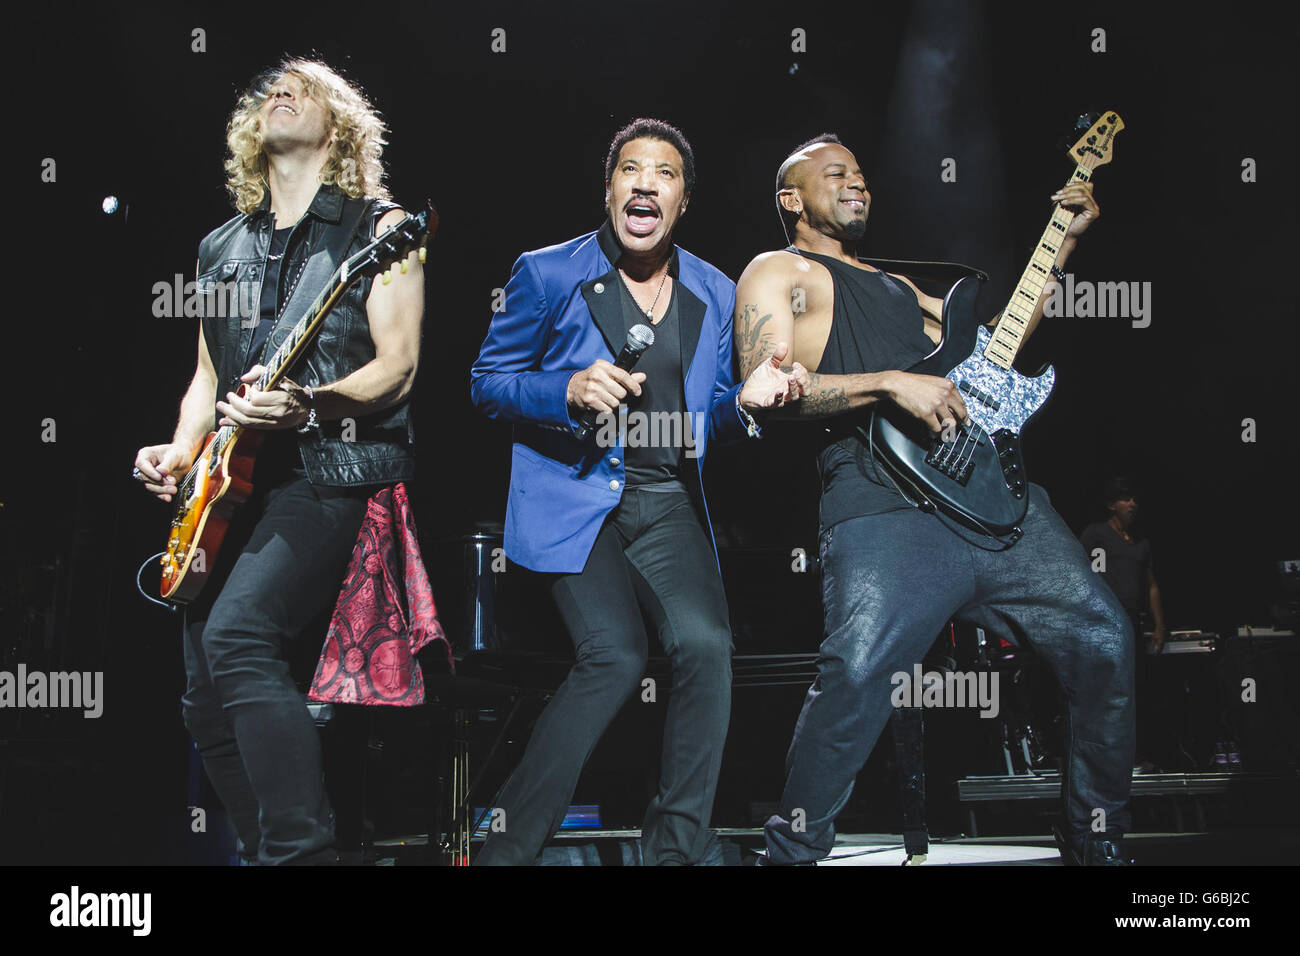 Manchester Arena, UK. June 29, 2016 - American singer/songwriter, Lionel Richie, performs at the Manchester Arena - Stock Image